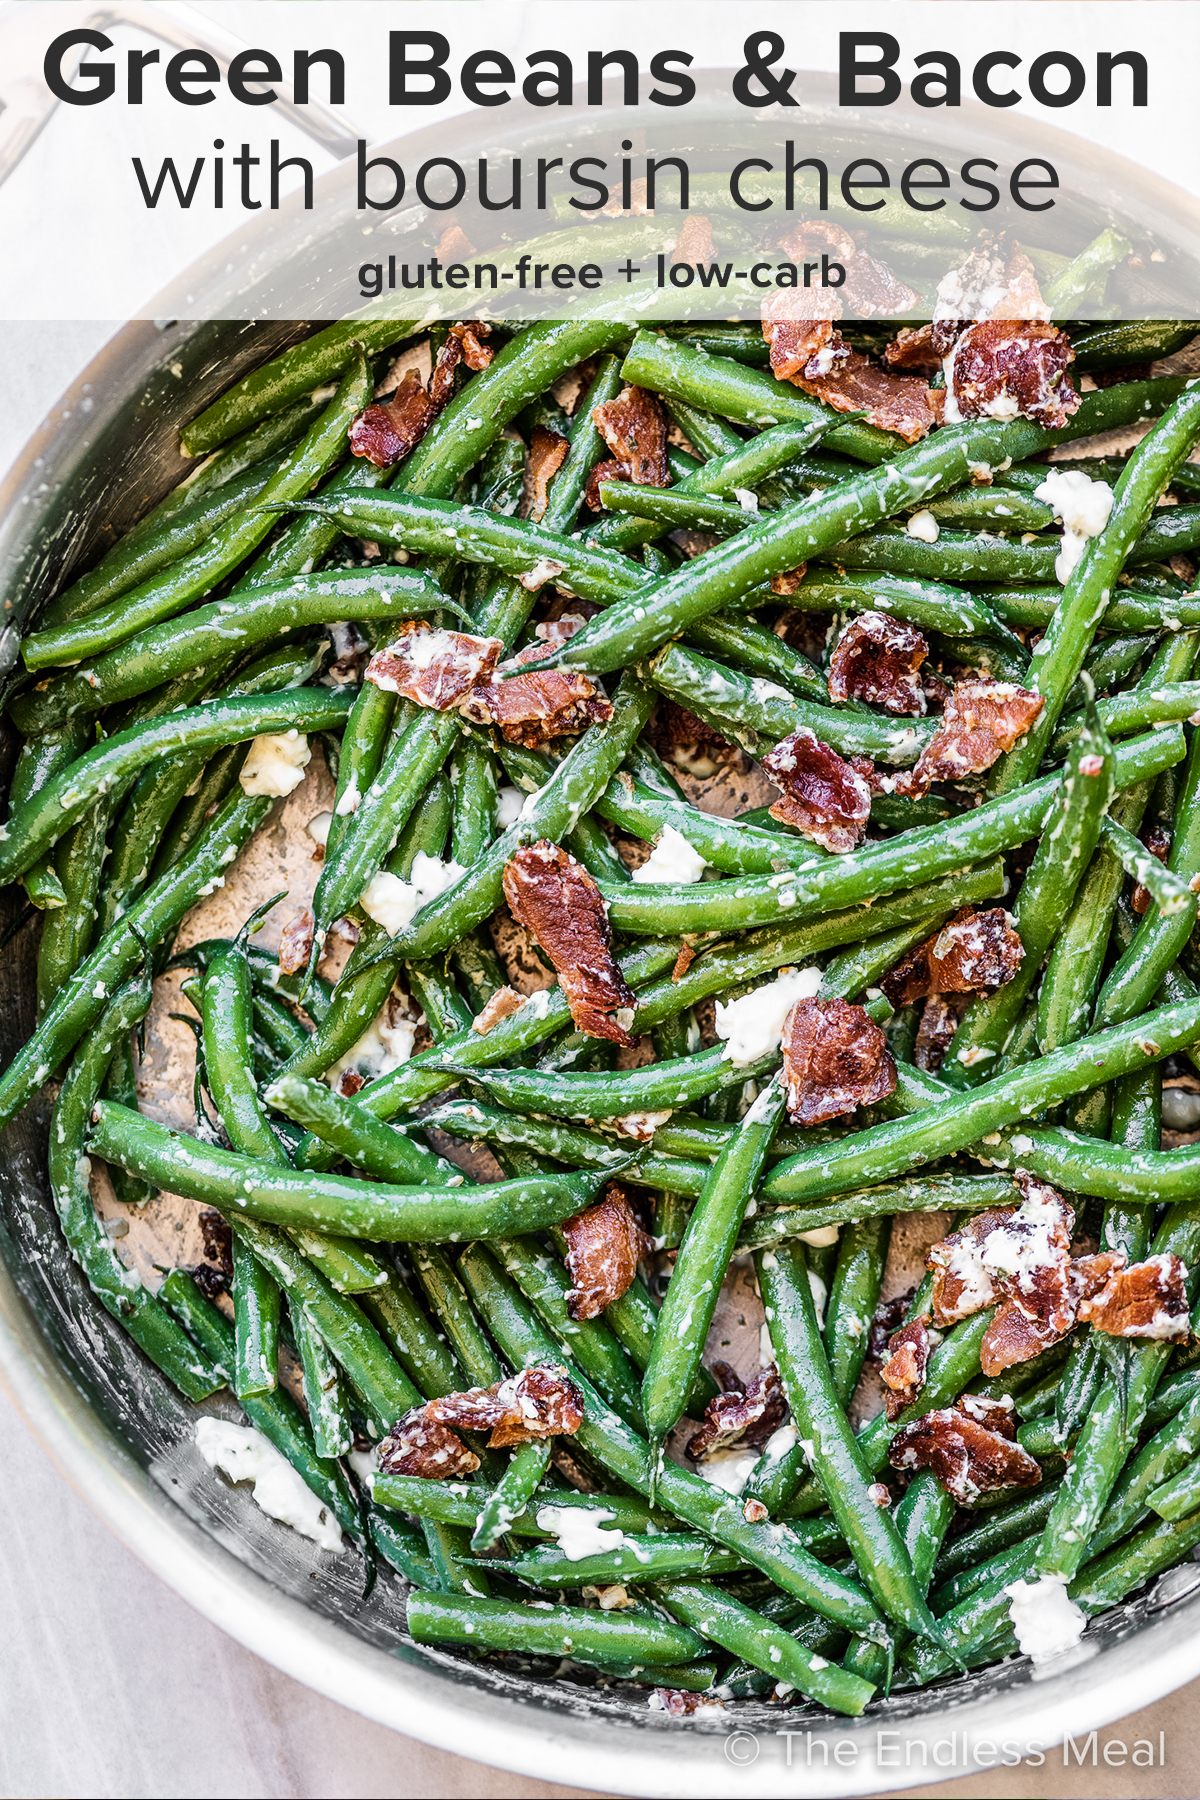 Green beans and bacon in a frying pan and the recipe title on top of the picture.